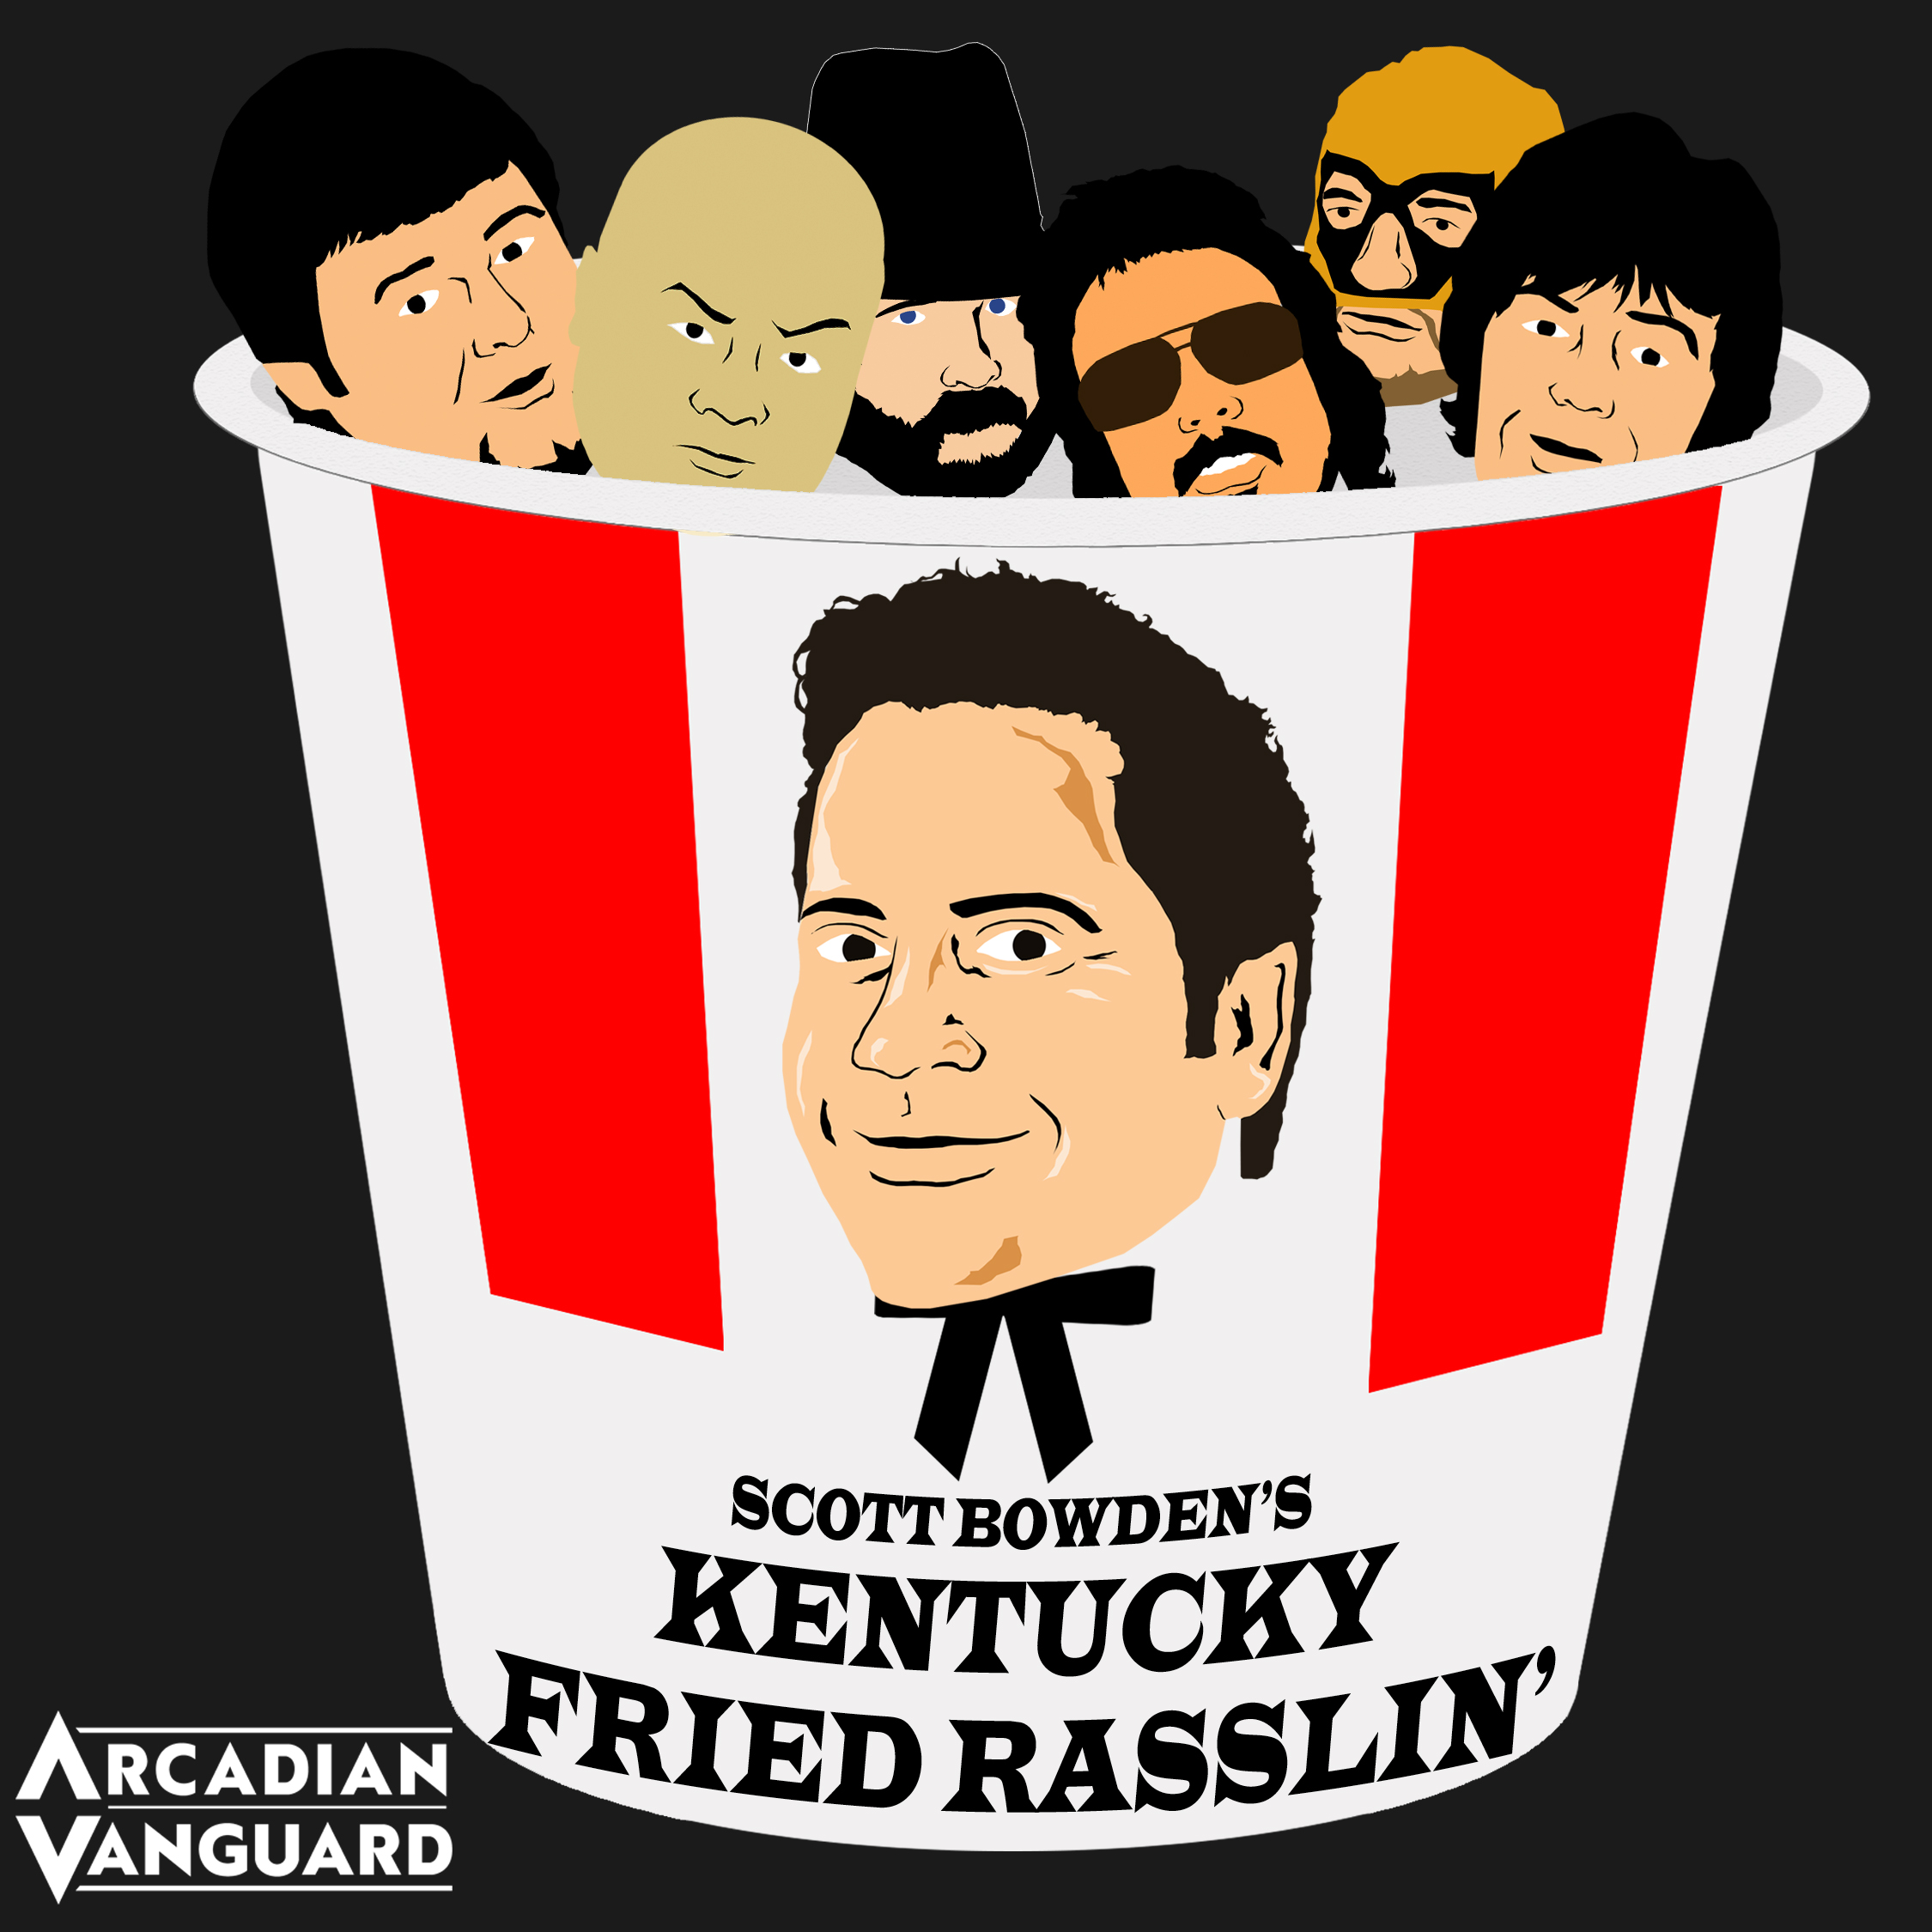 Kentucky Fried Rasslin'